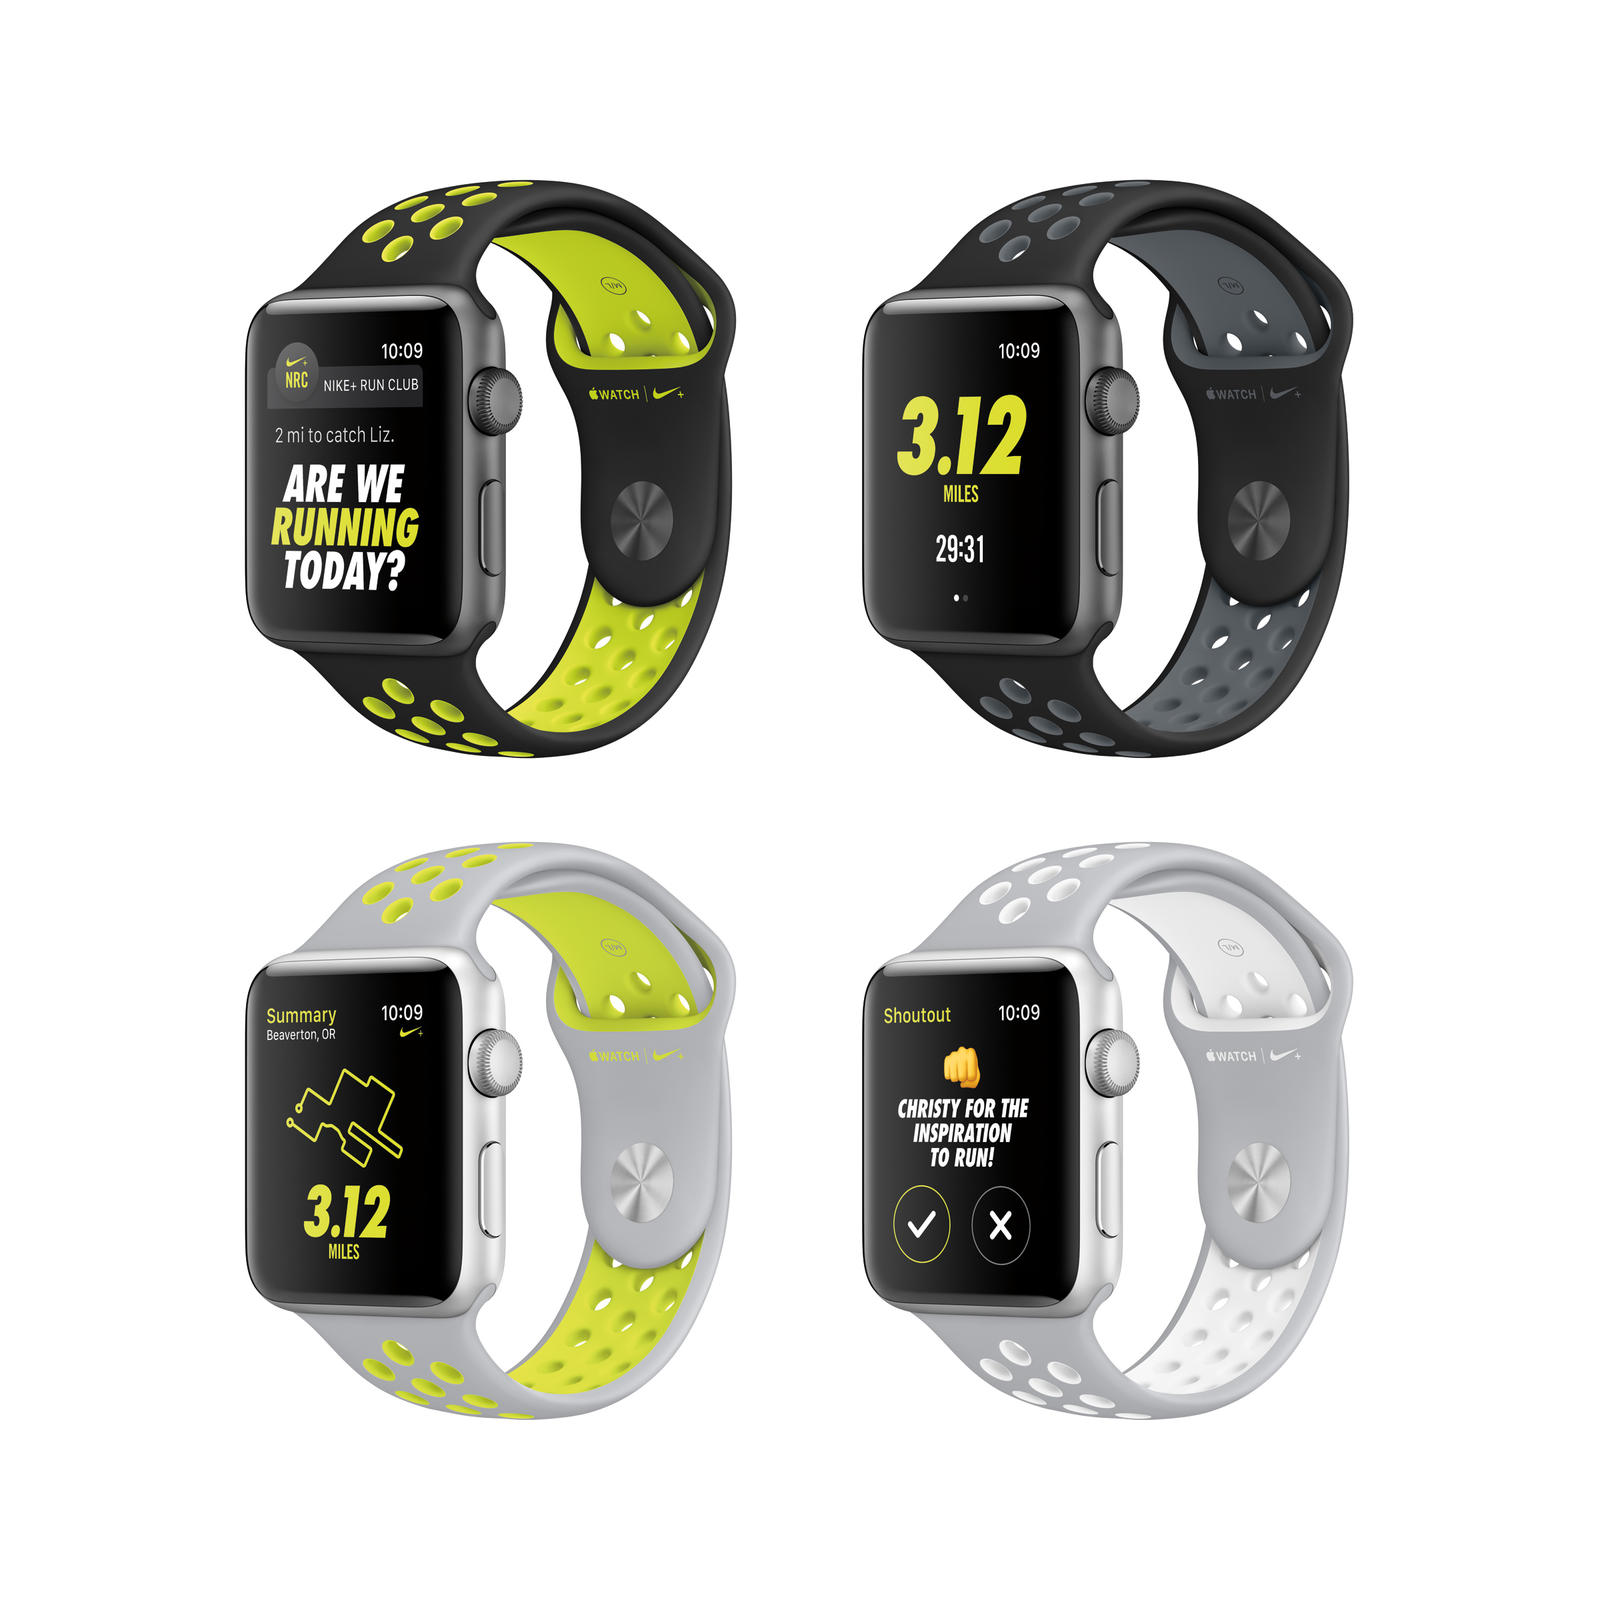 nike news apple nike launch the perfect running partner apple share image